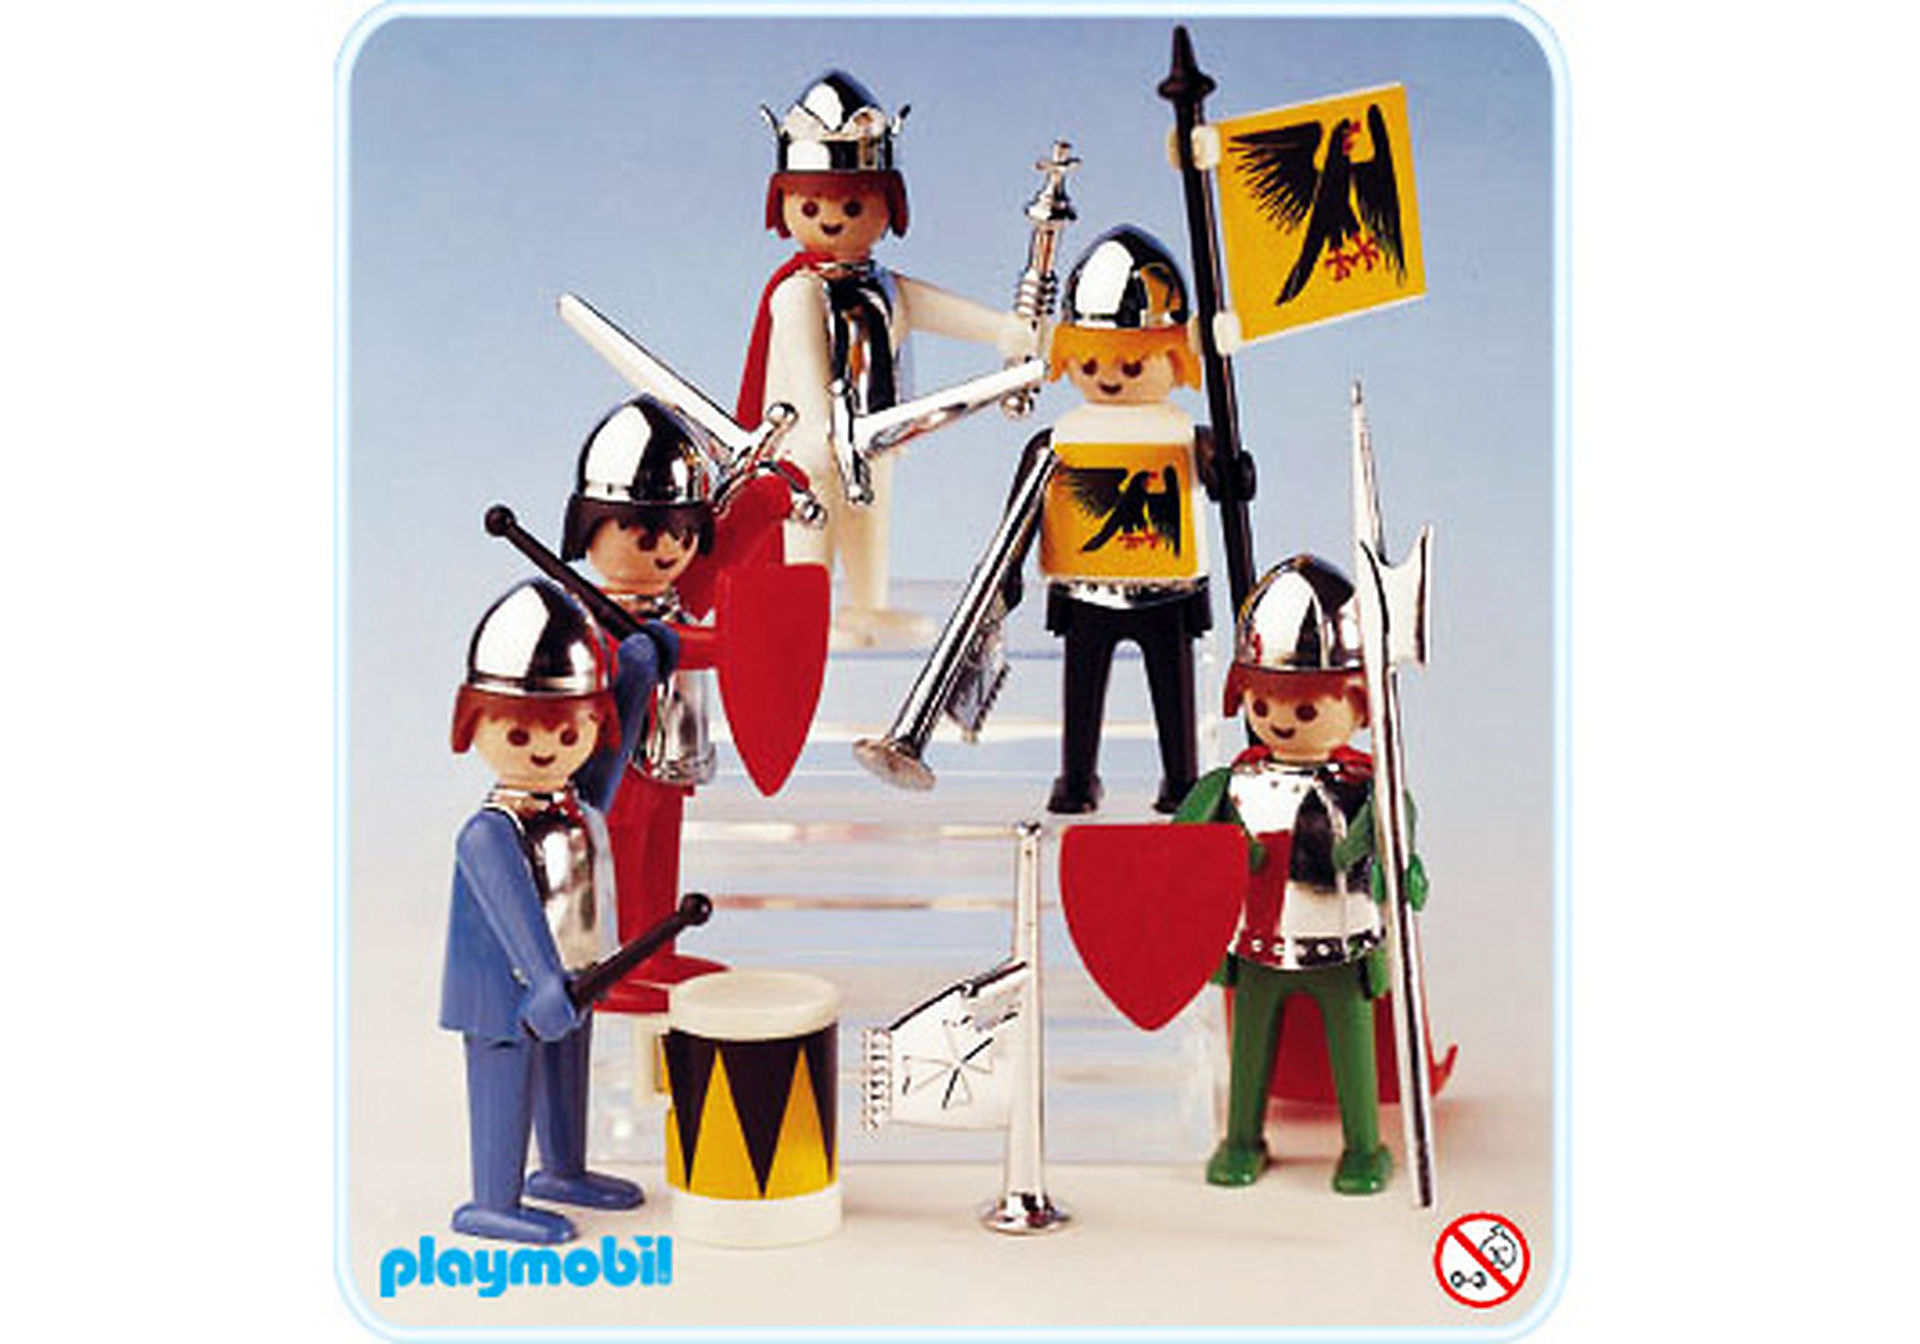 http://media.playmobil.com/i/playmobil/3261-B_product_detail/Ritter-Set